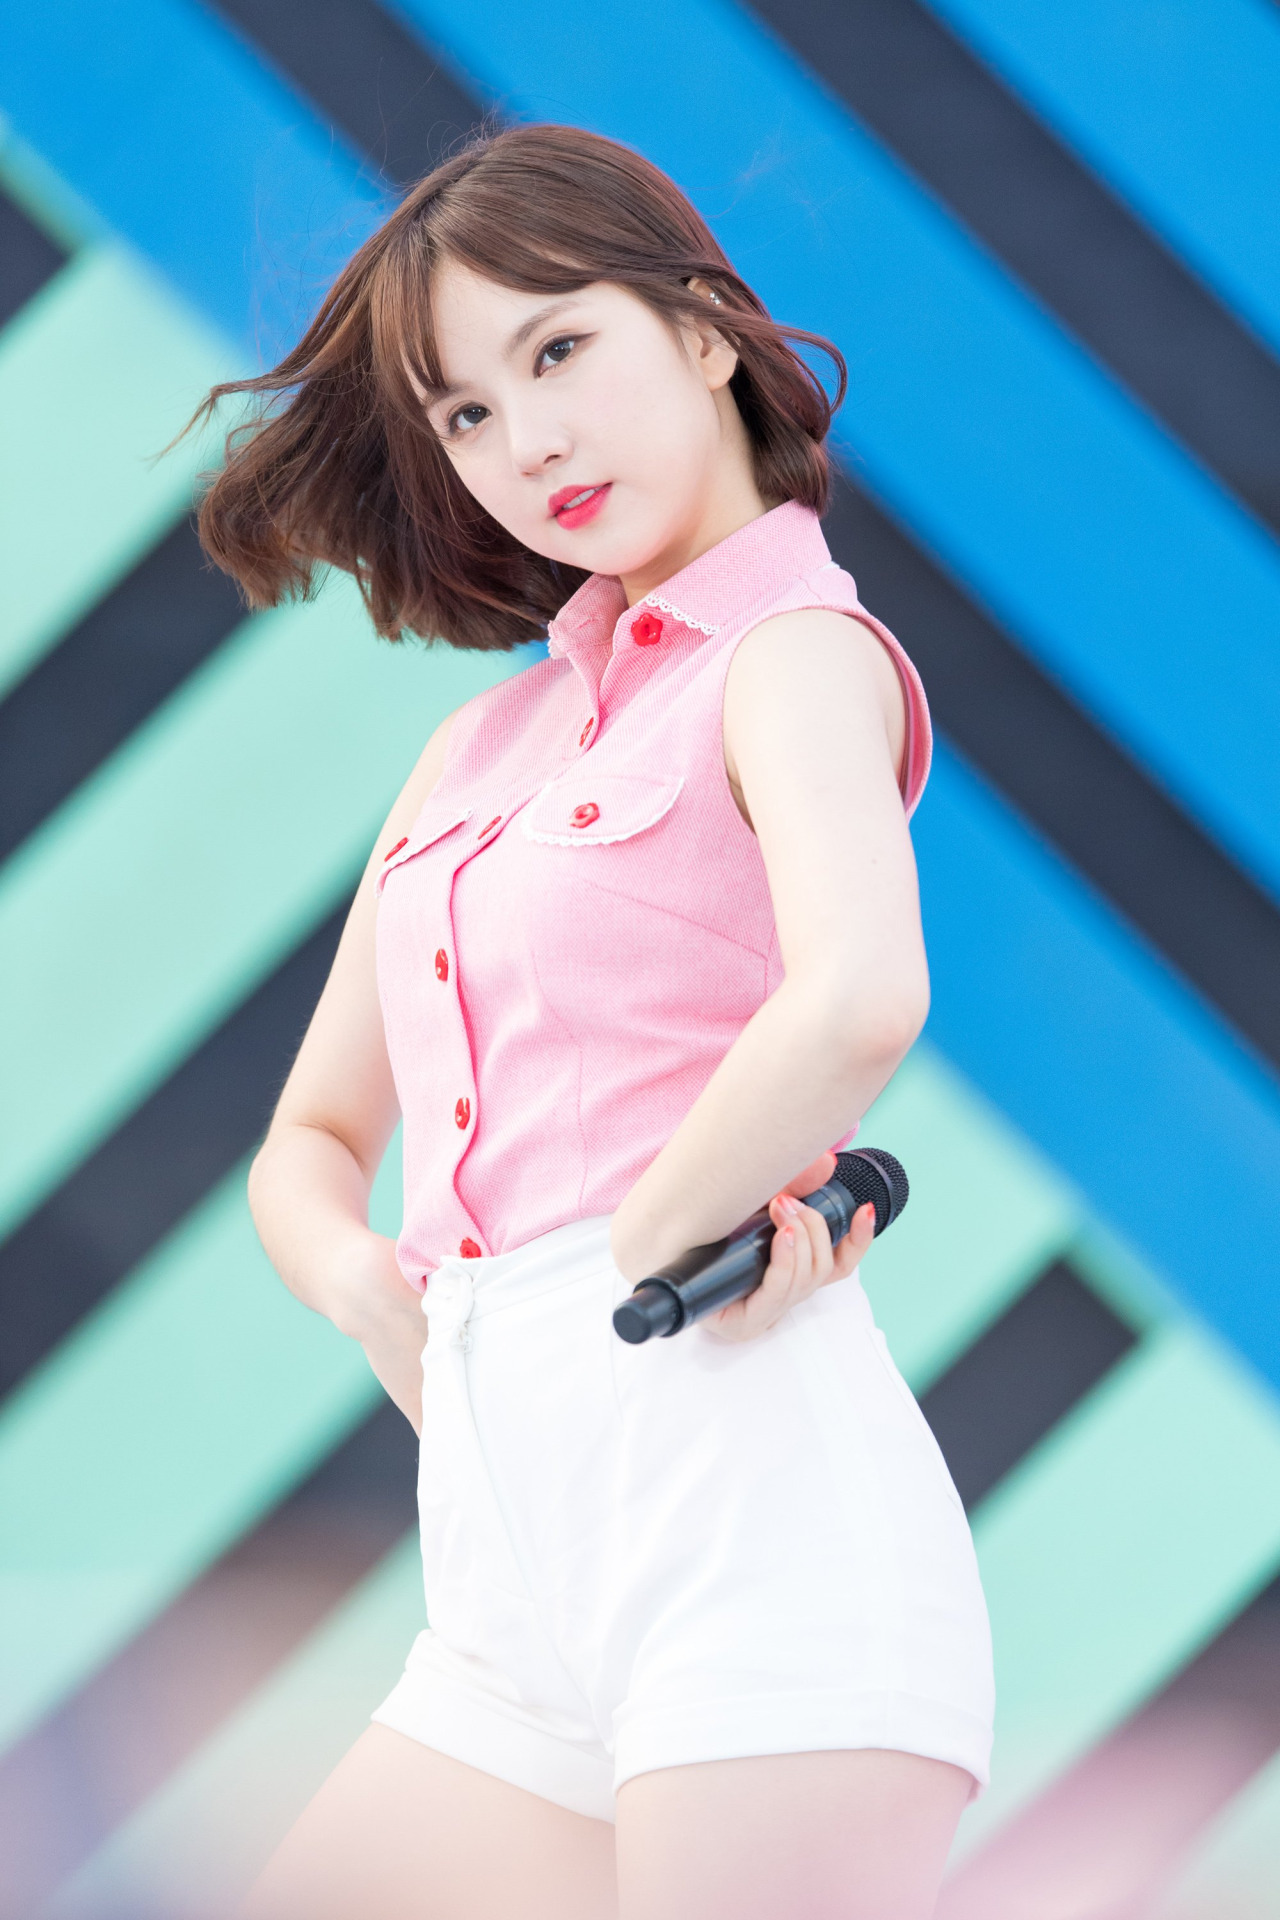 Eunha Android/iPhone Wallpaper #89478 - Asiachan KPOP ...: http://kpop.asiachan.com/89478